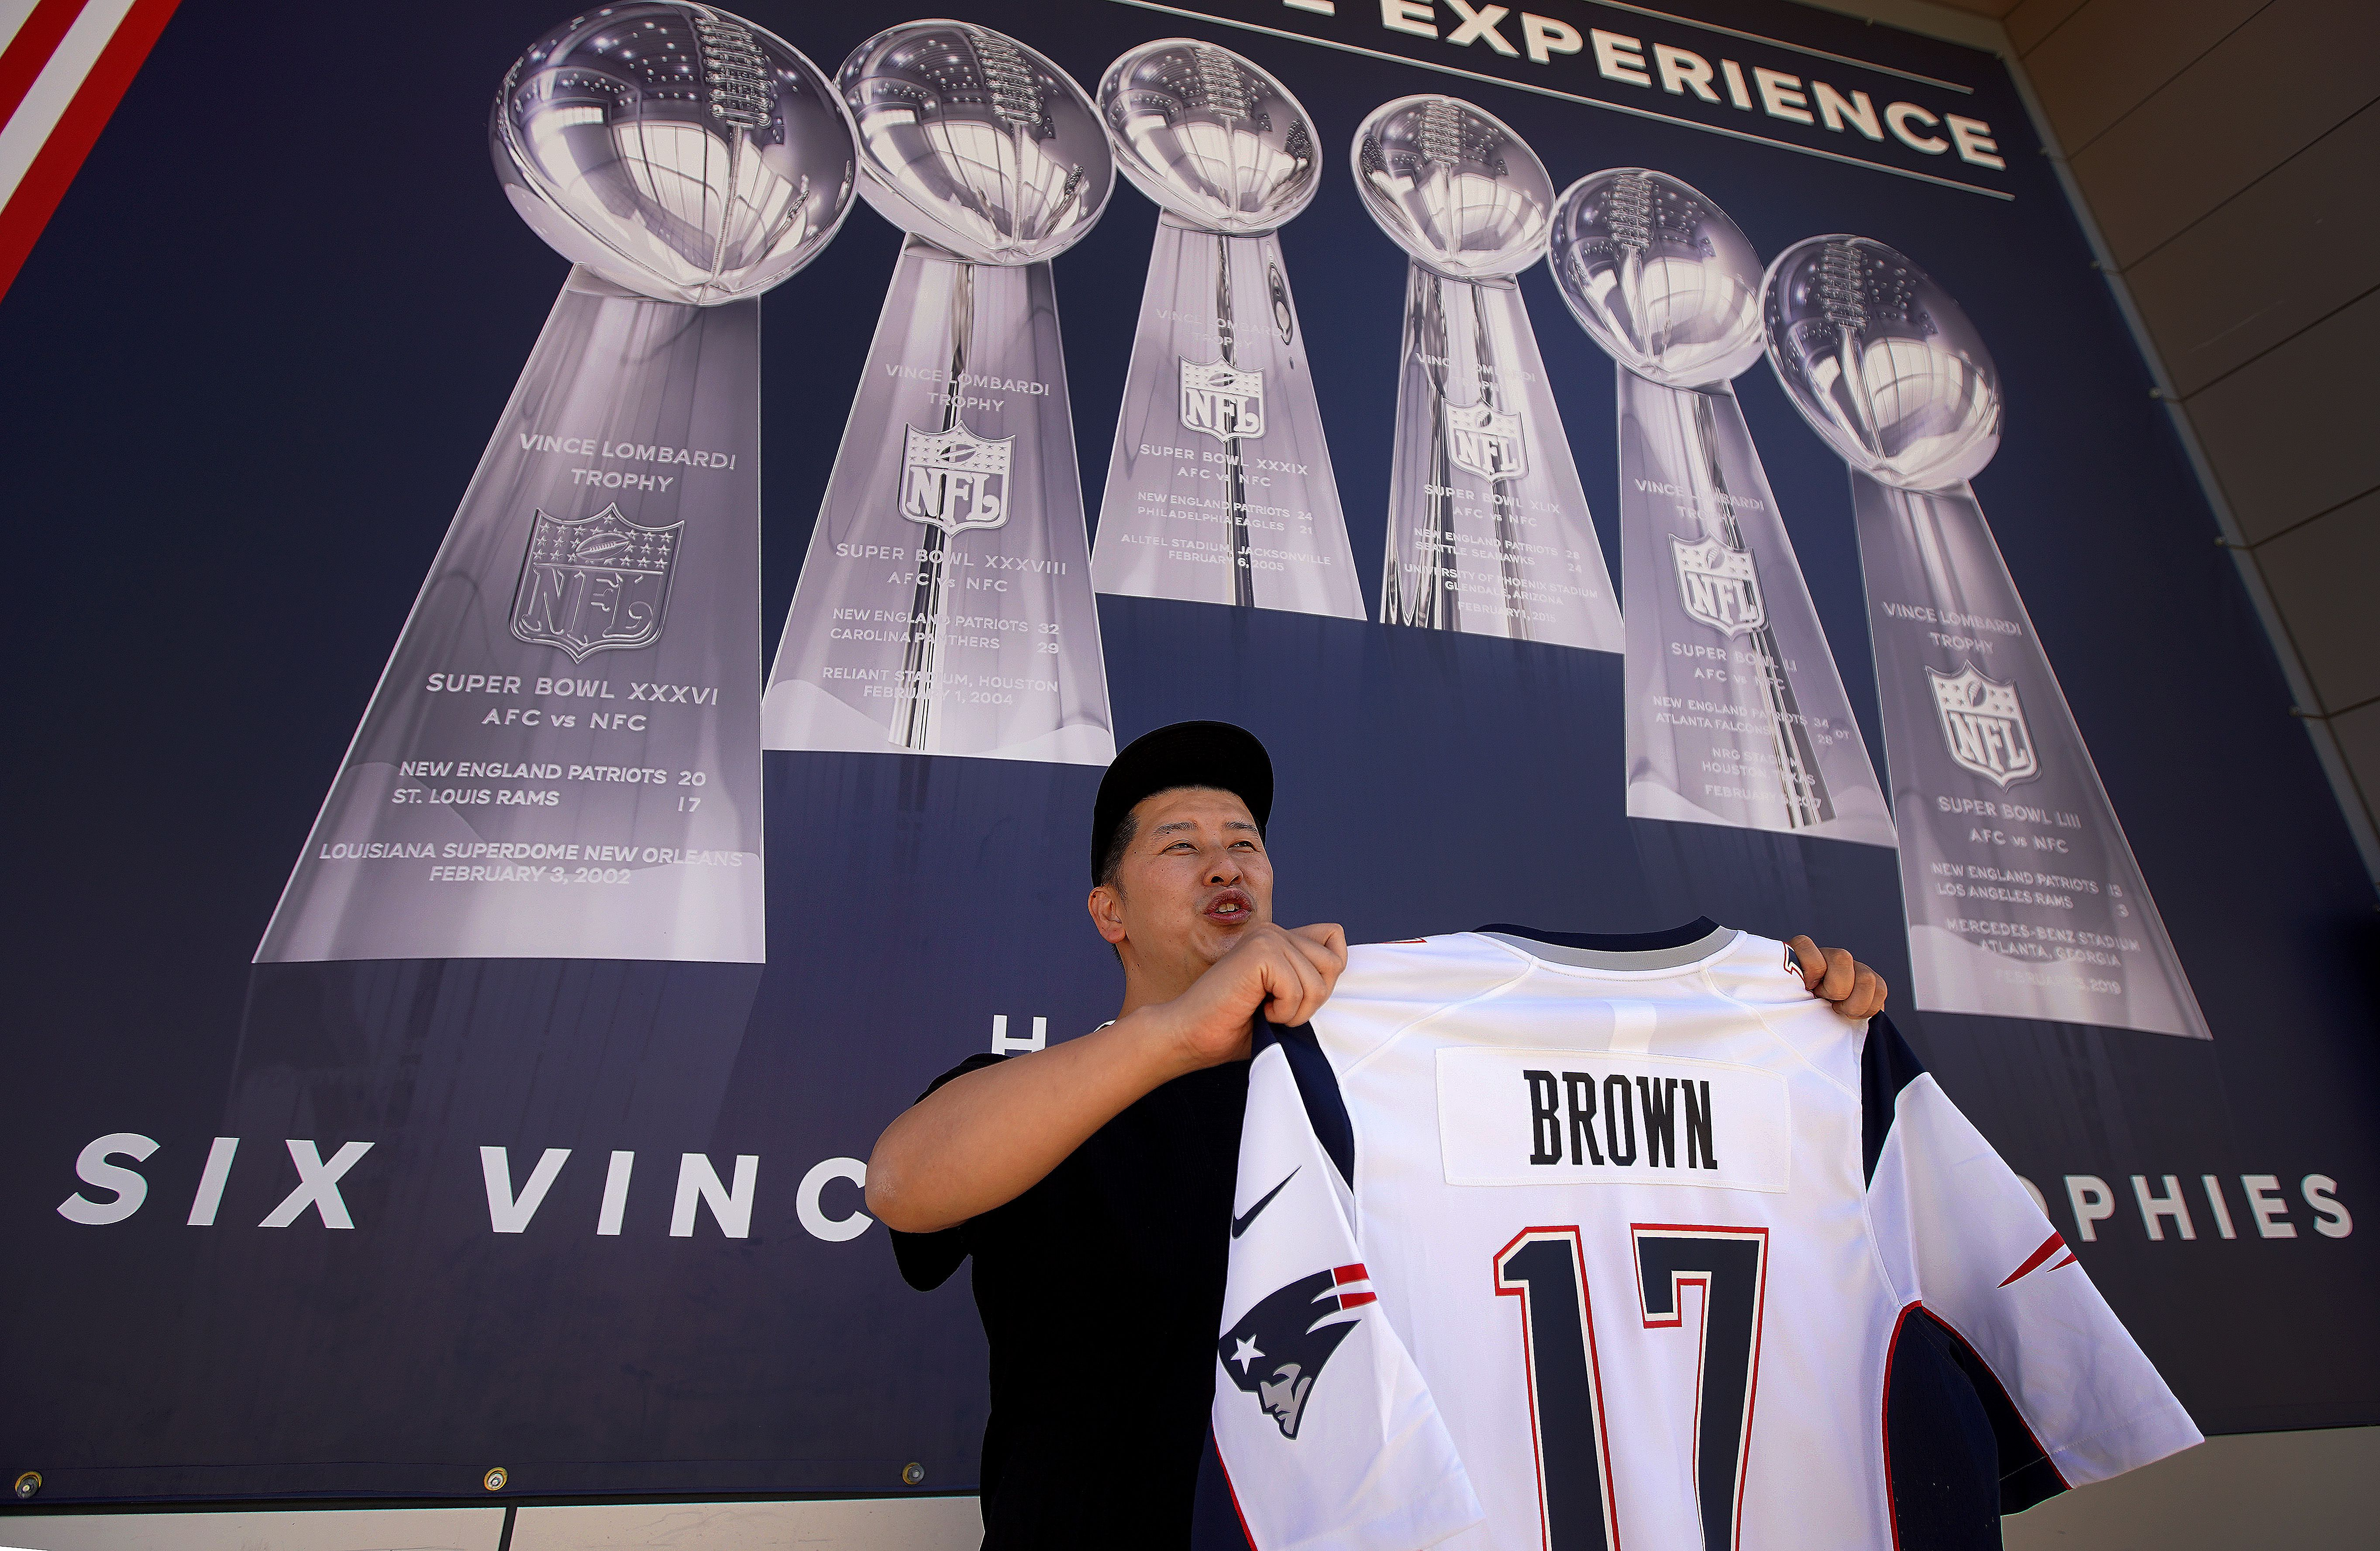 Antonio Brown's jersey for sale but not (yet) on display at ...